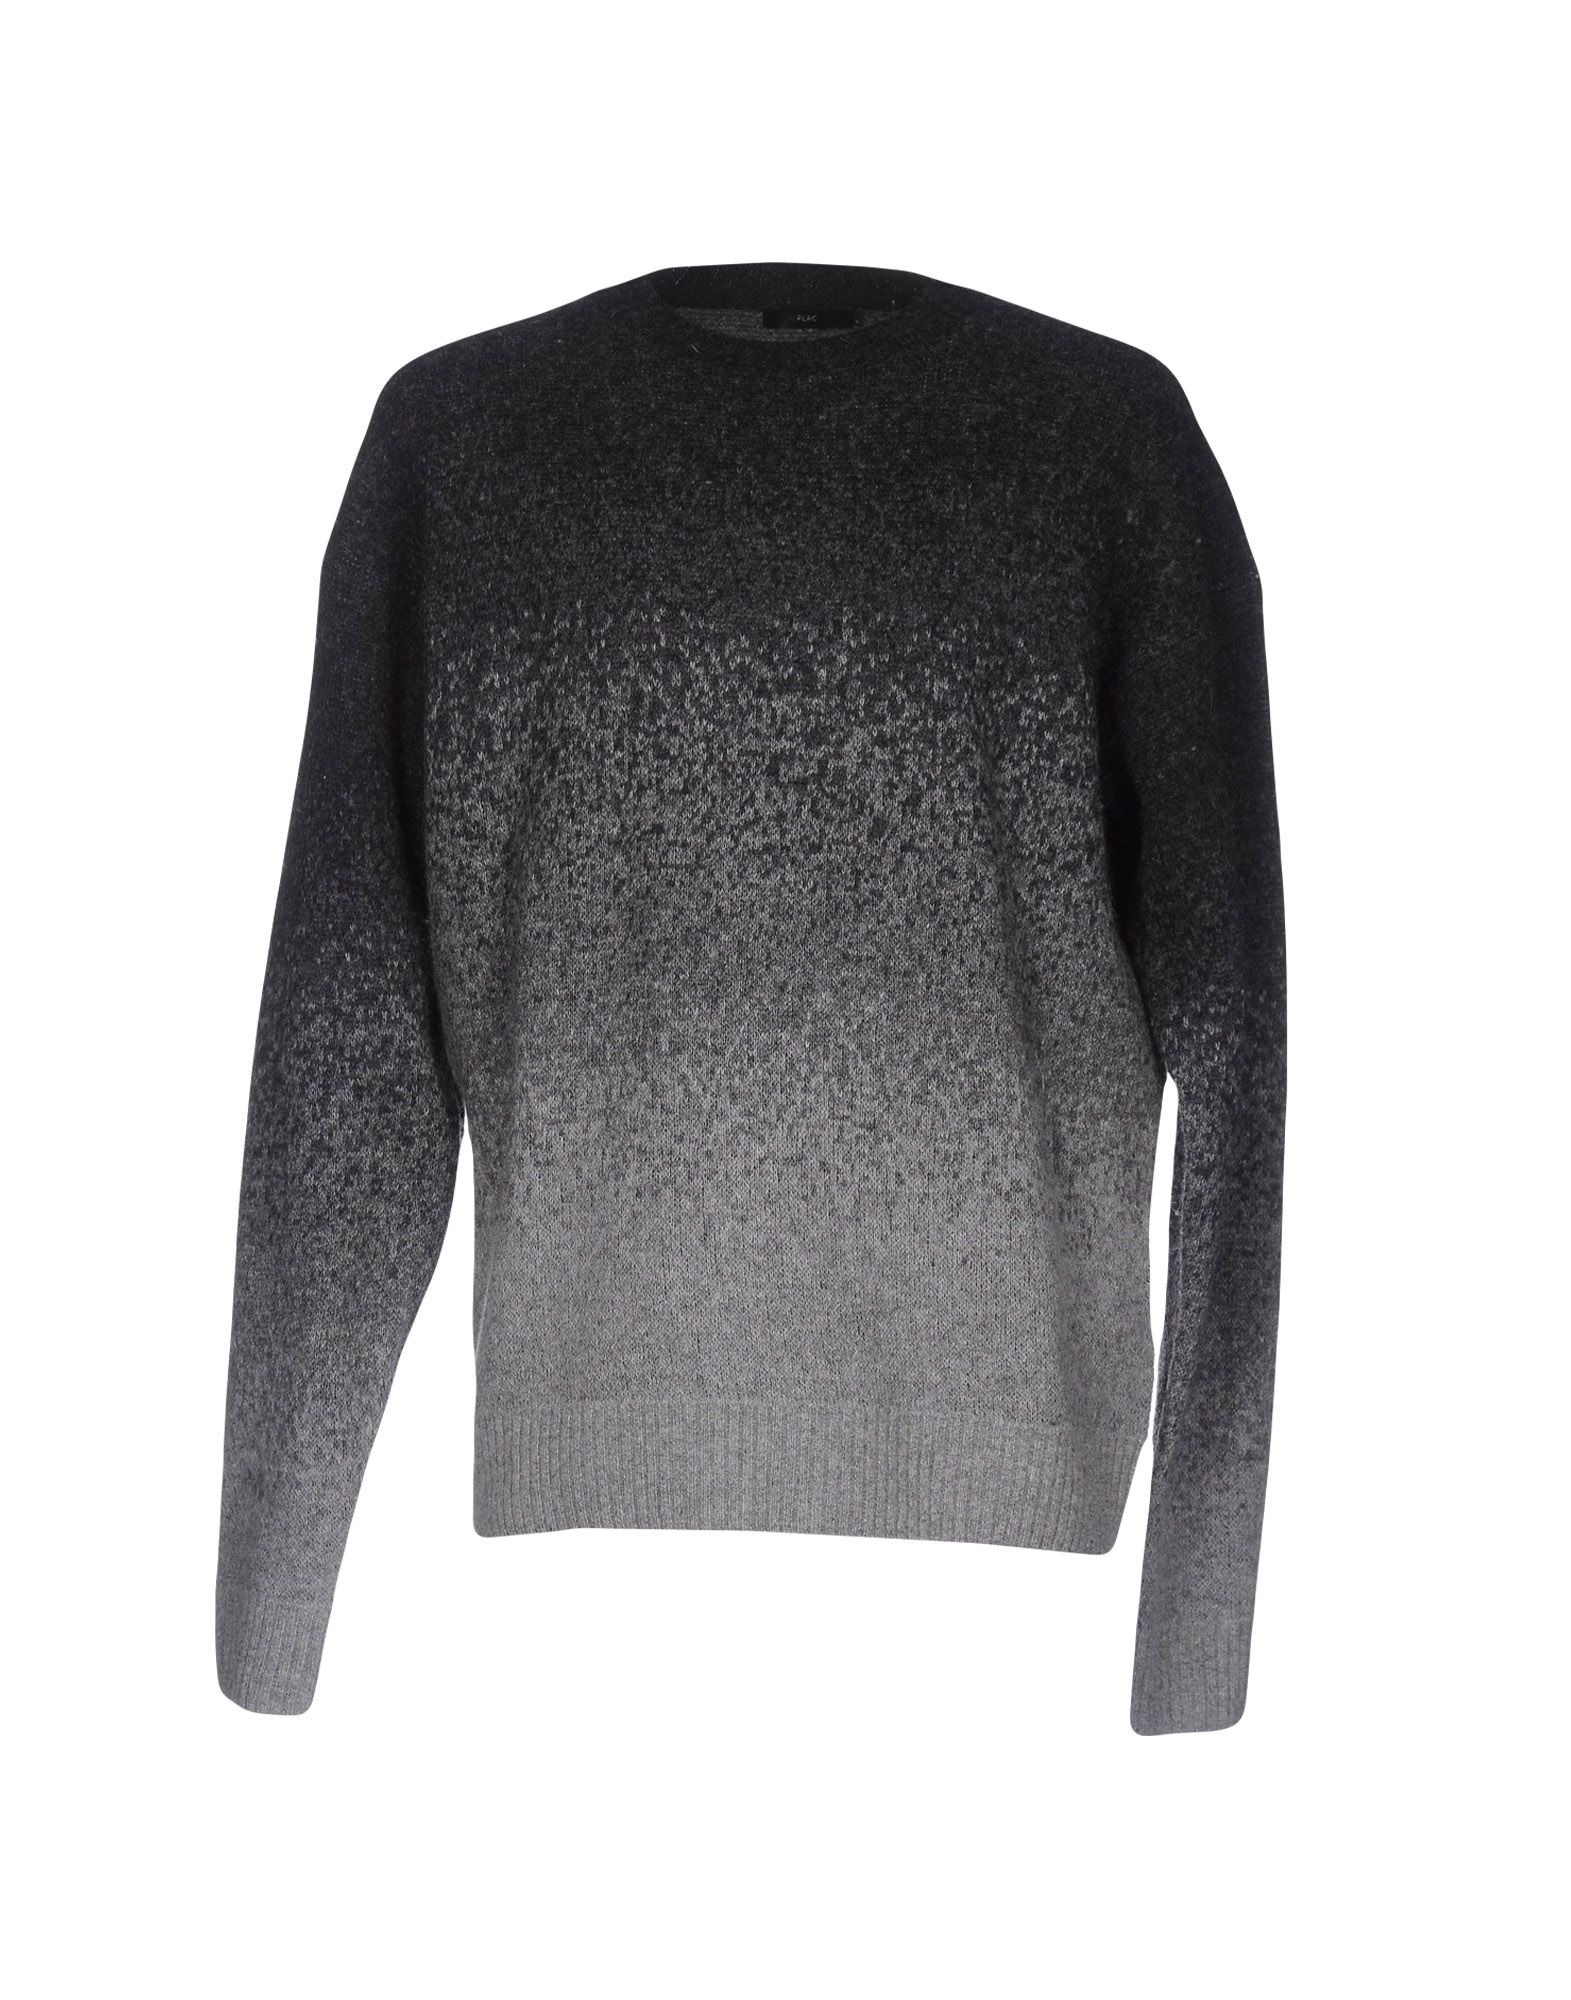 PLAC Sweater in Steel Grey